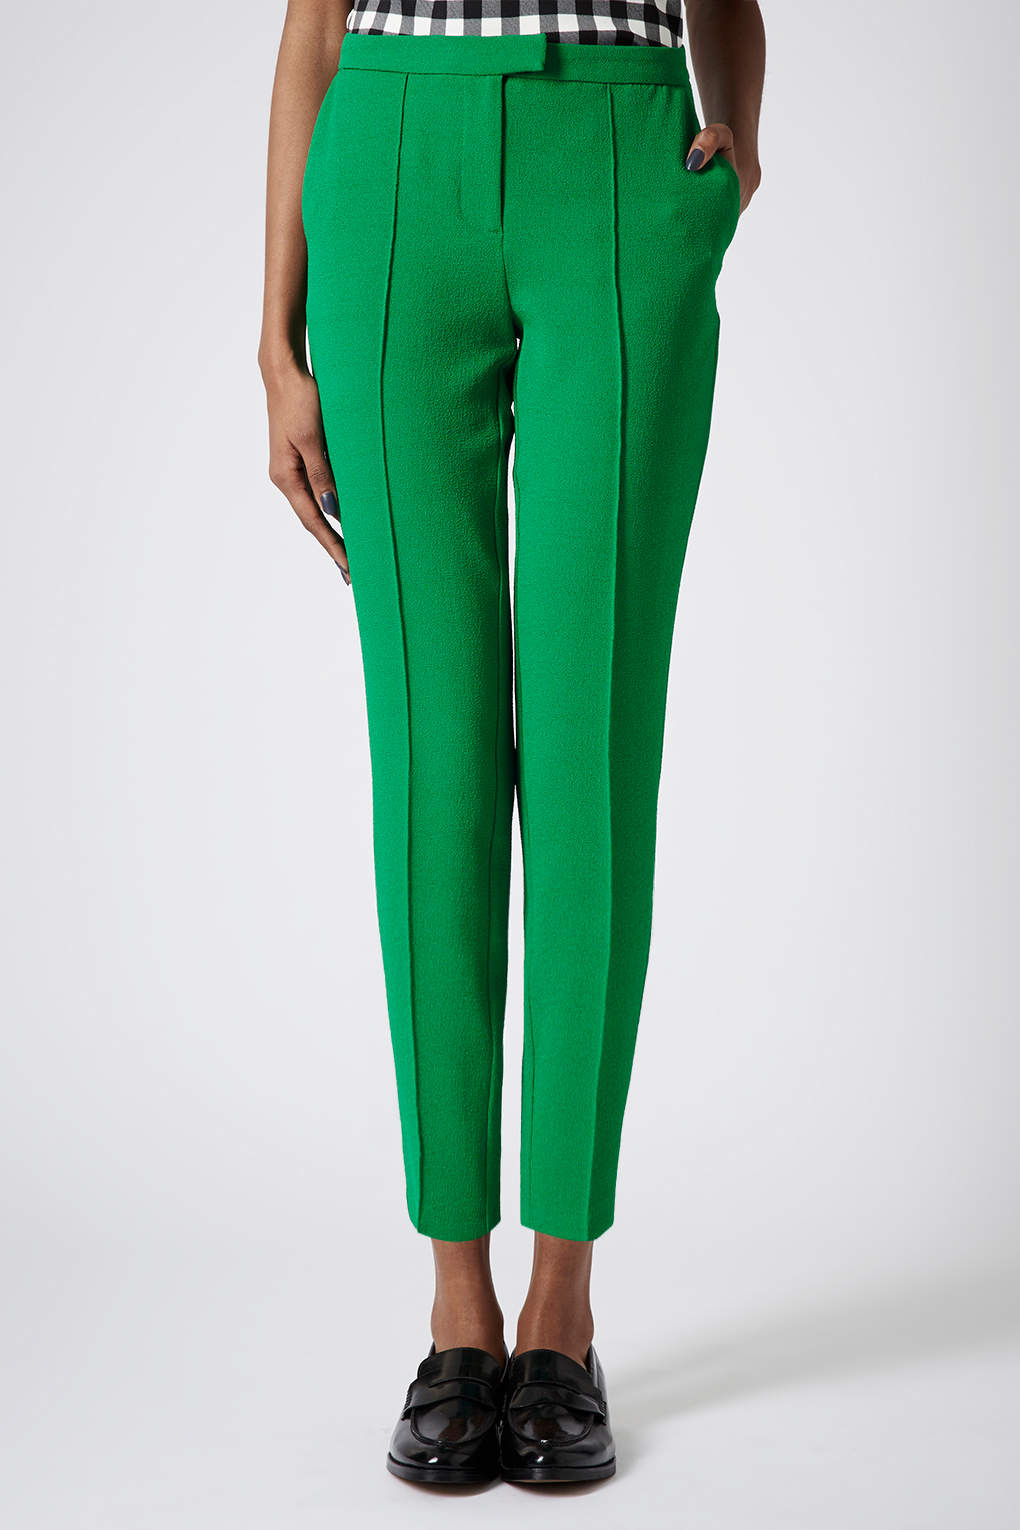 Lyst Topshop Crepe Cigarette Trousers In Green